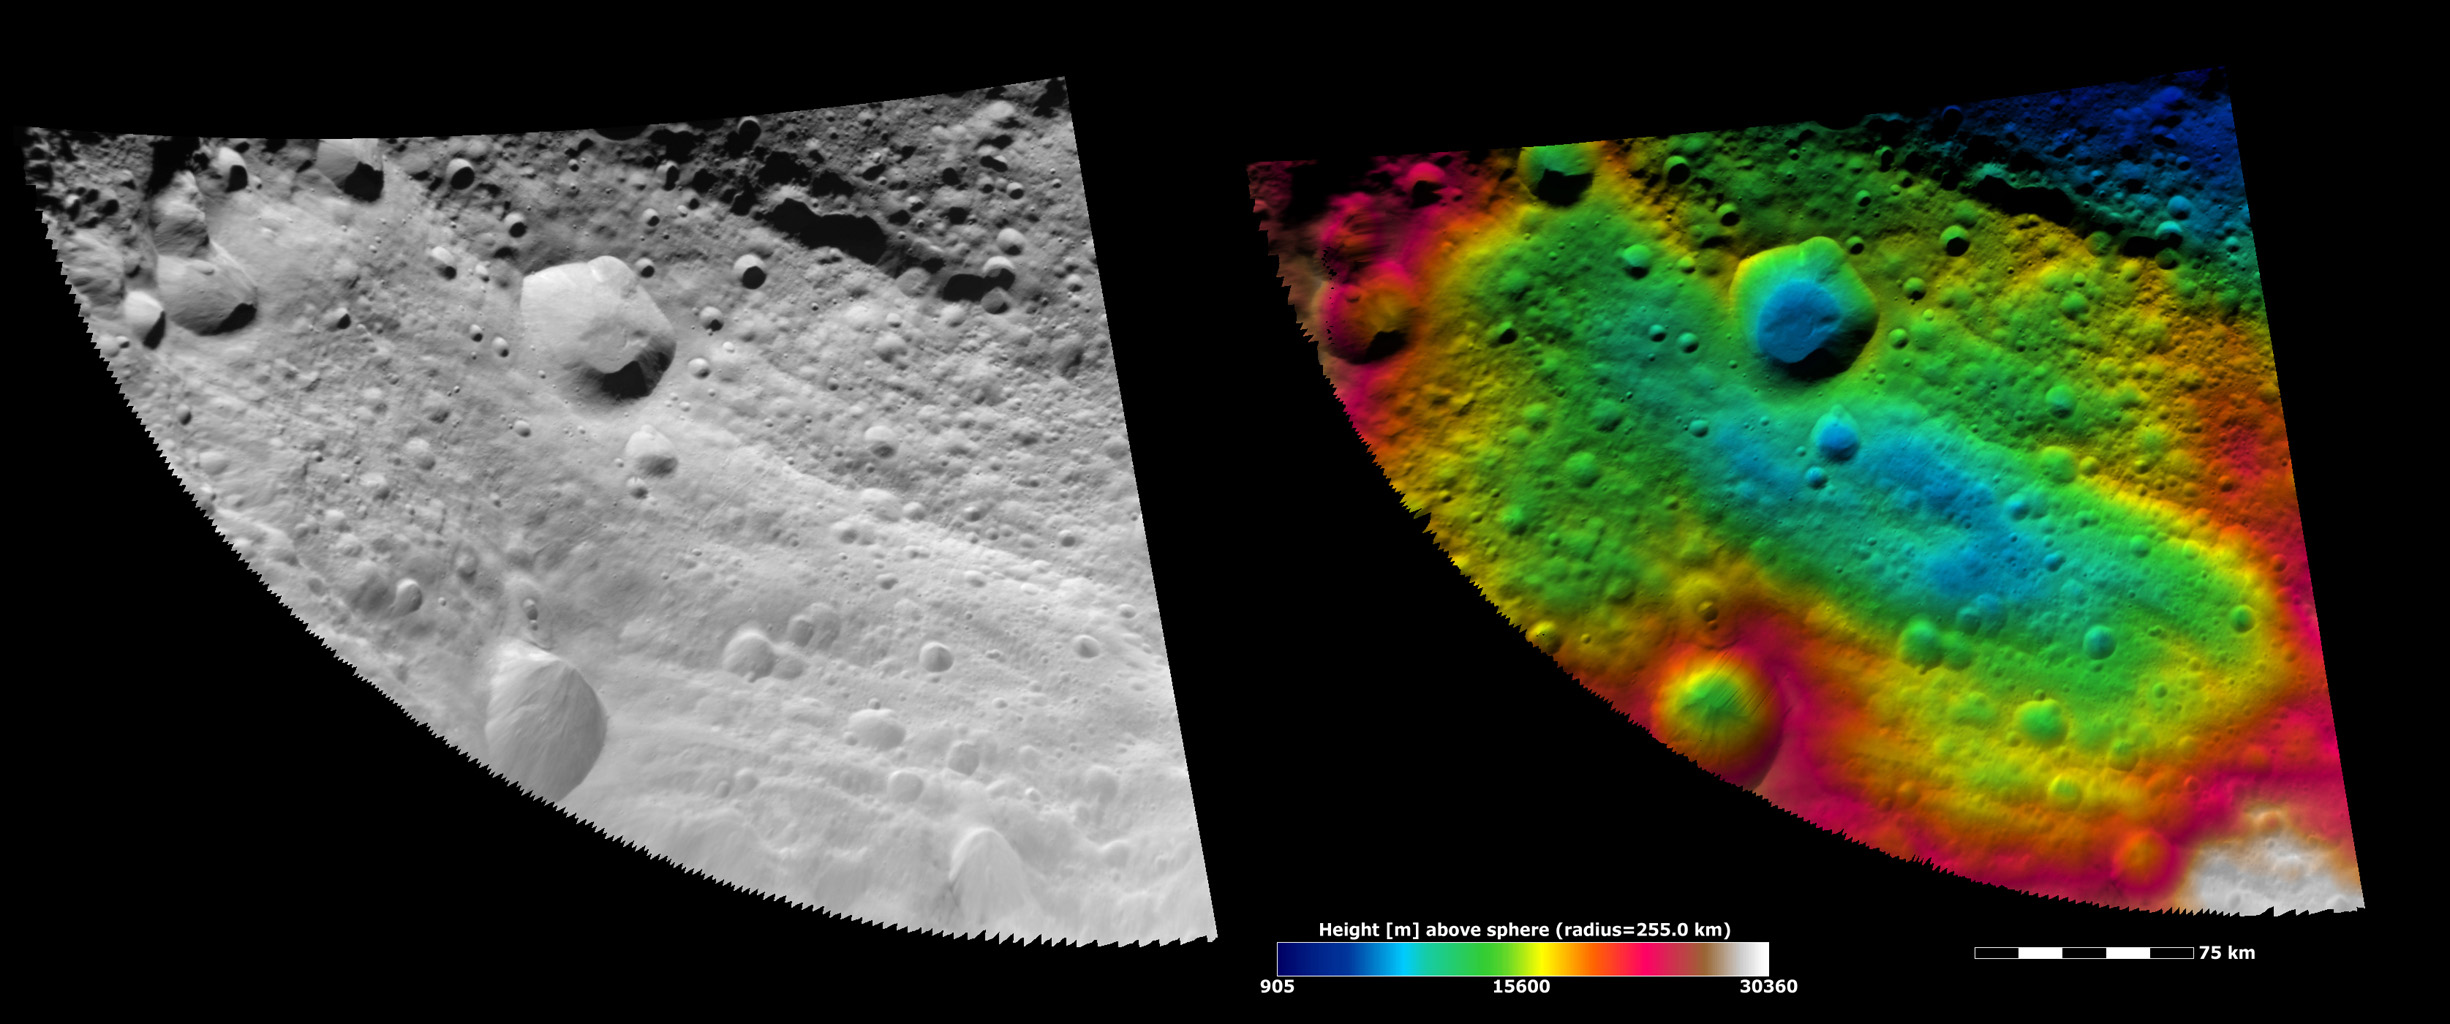 These images show part of asteroid Vesta's equatorial region, which contains impact craters and troughs (linear depressions).